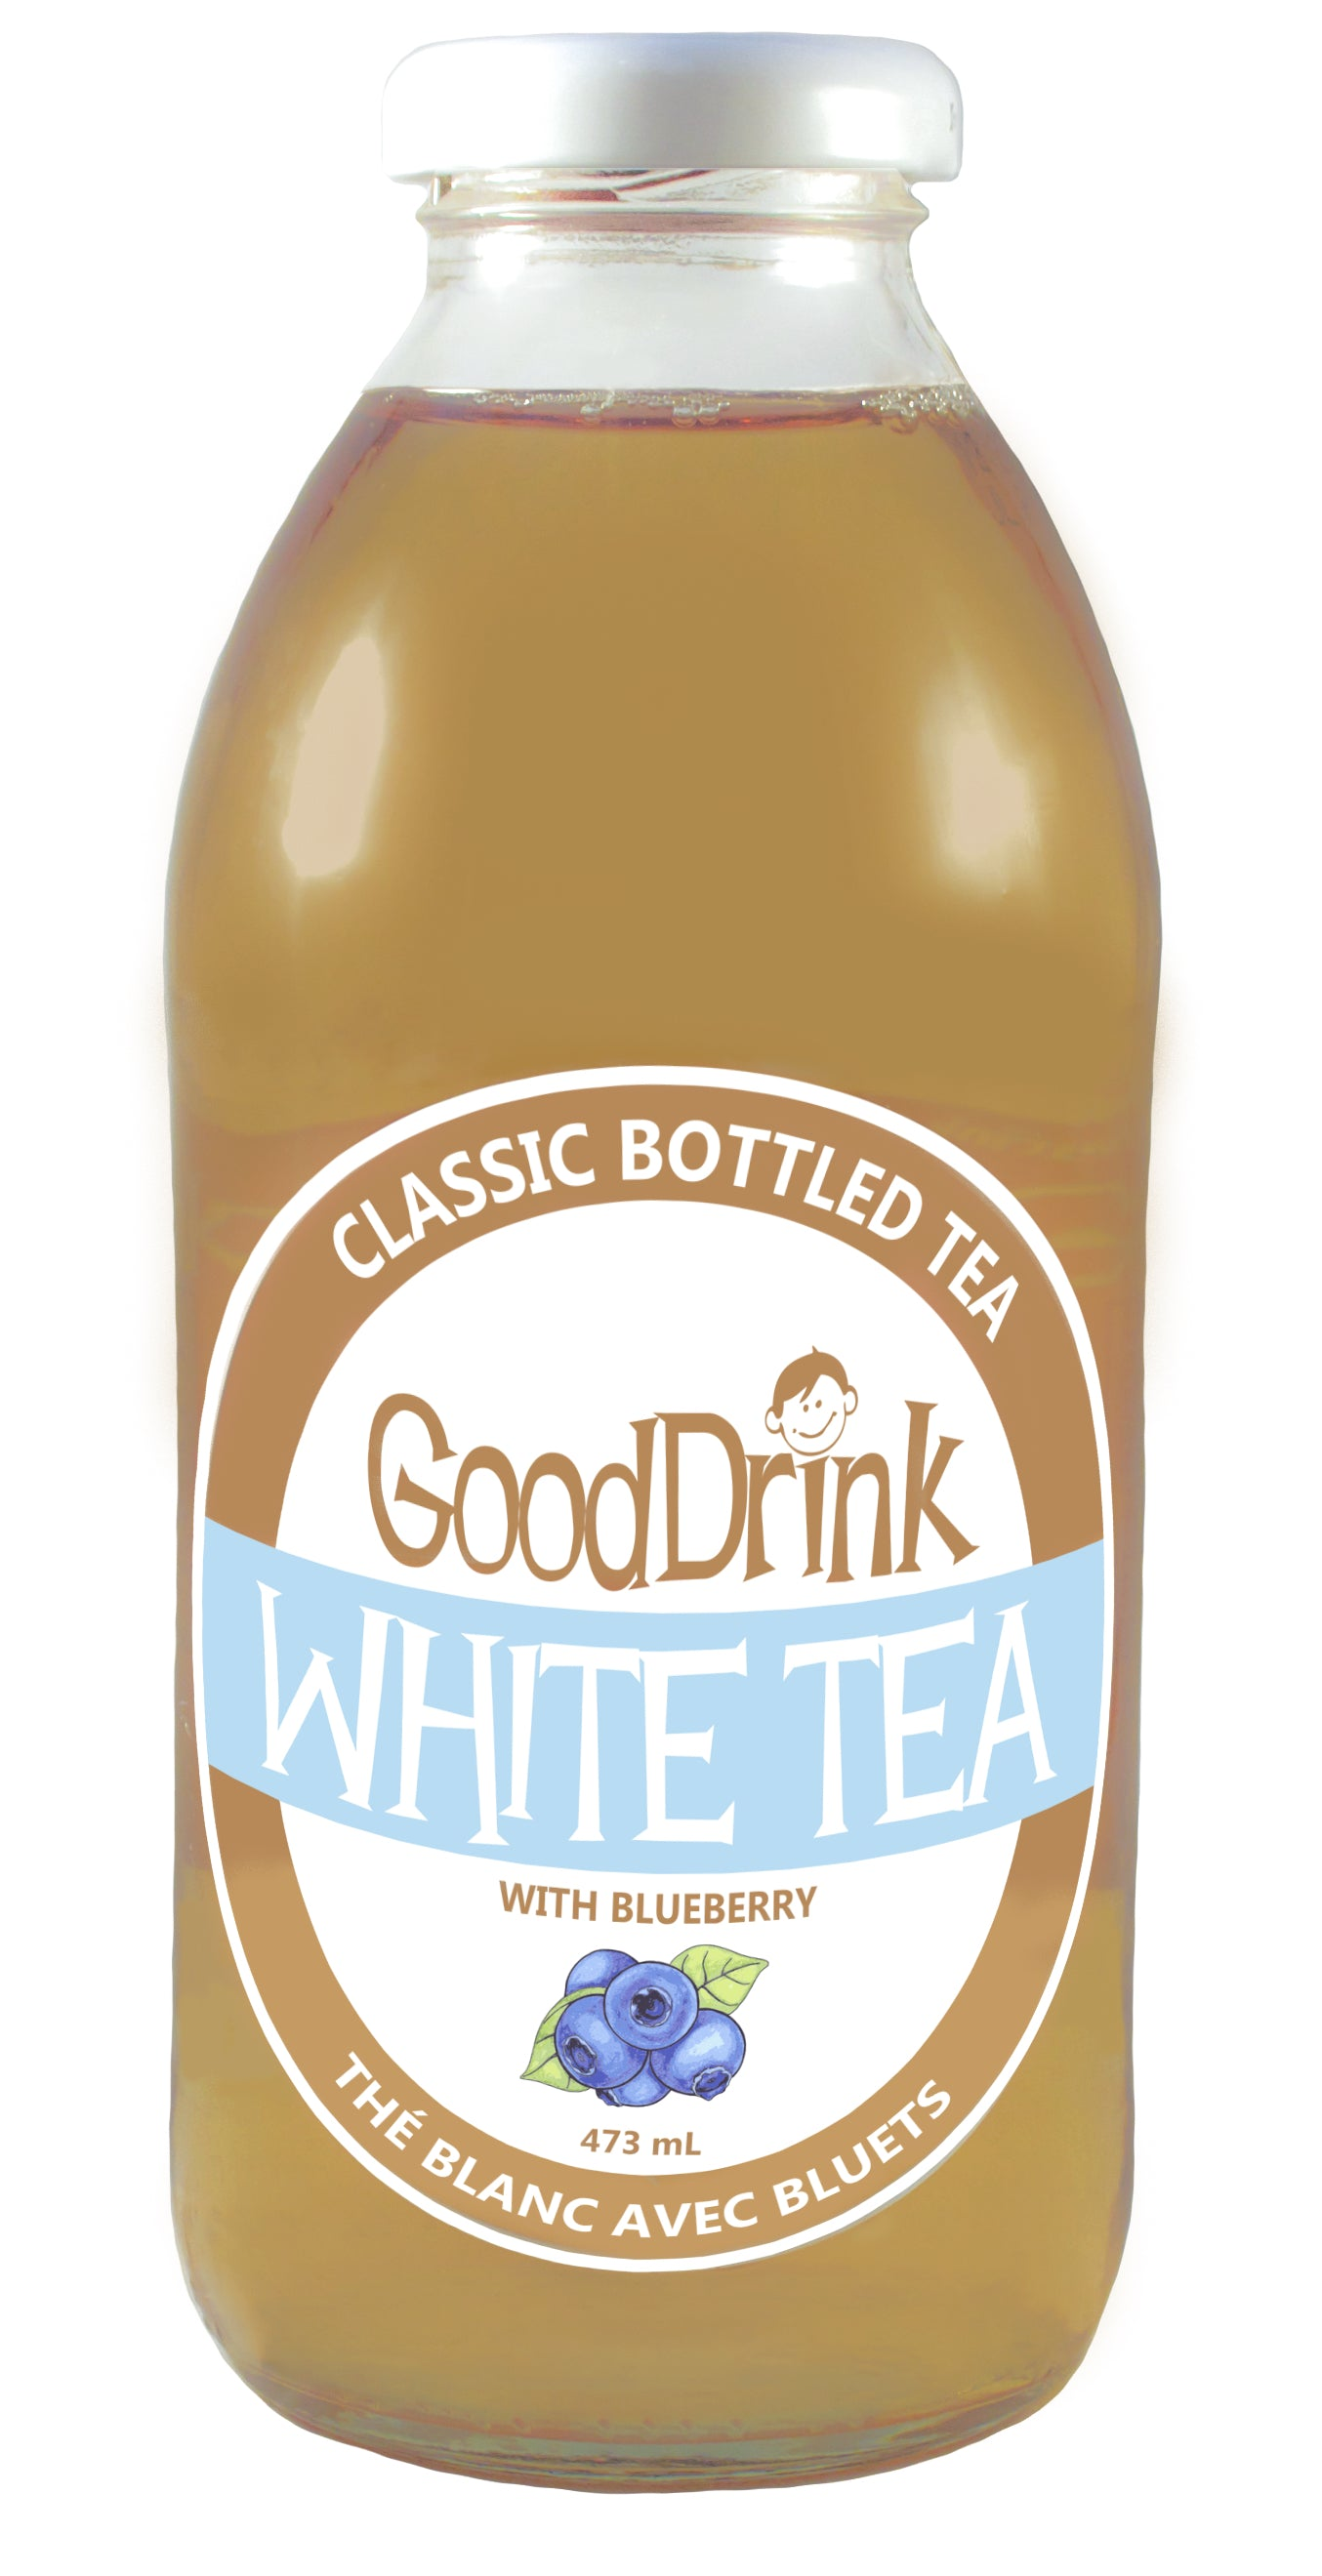 GoodDrink Bottled Teas